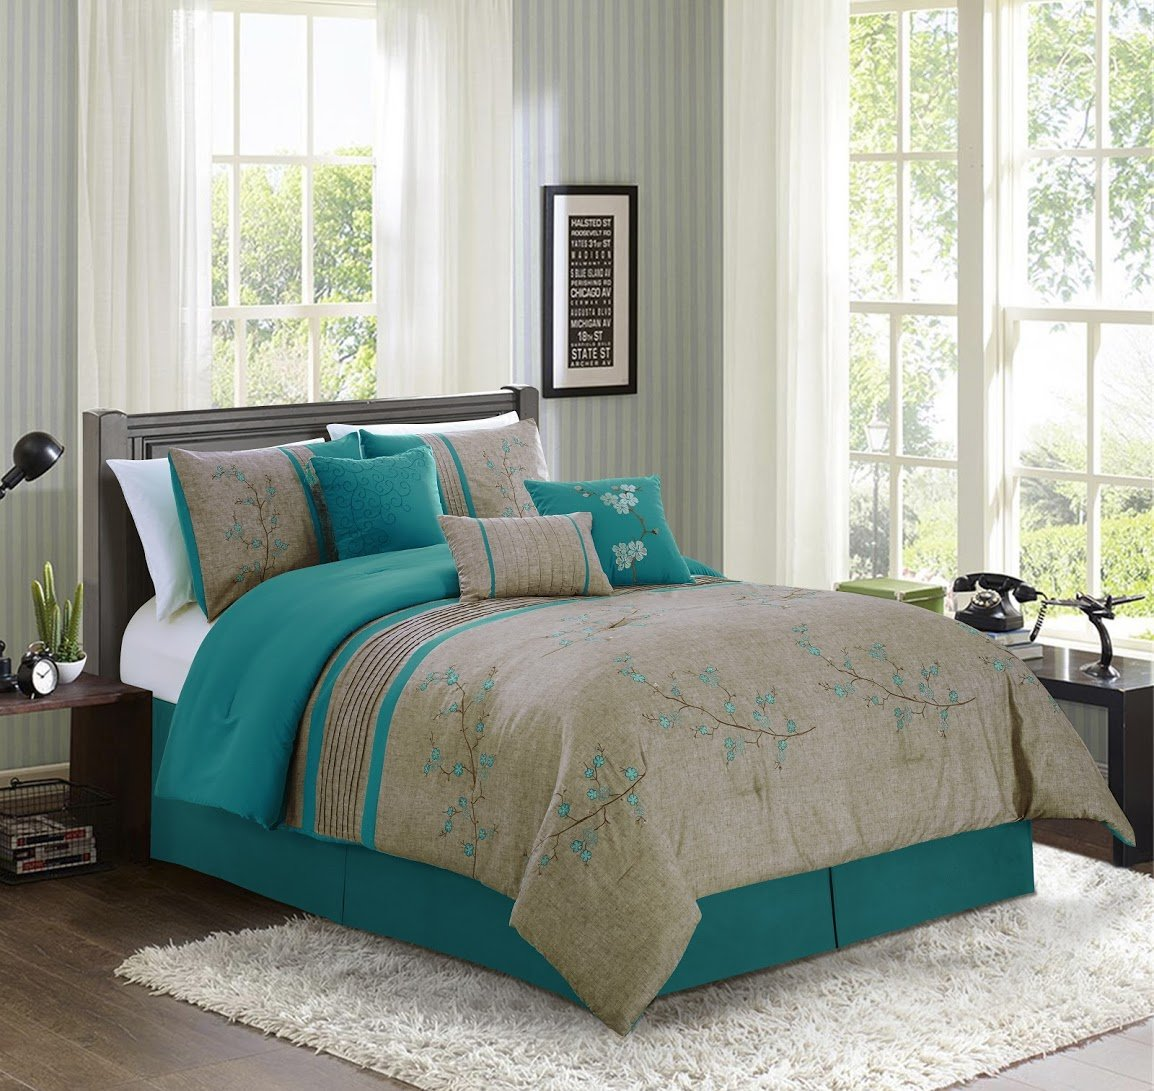 Chezmoi Collection Noriko 7-Piece Luxury Teal Cherry Blossoms Floral Embroidery Bedding Comforter Set